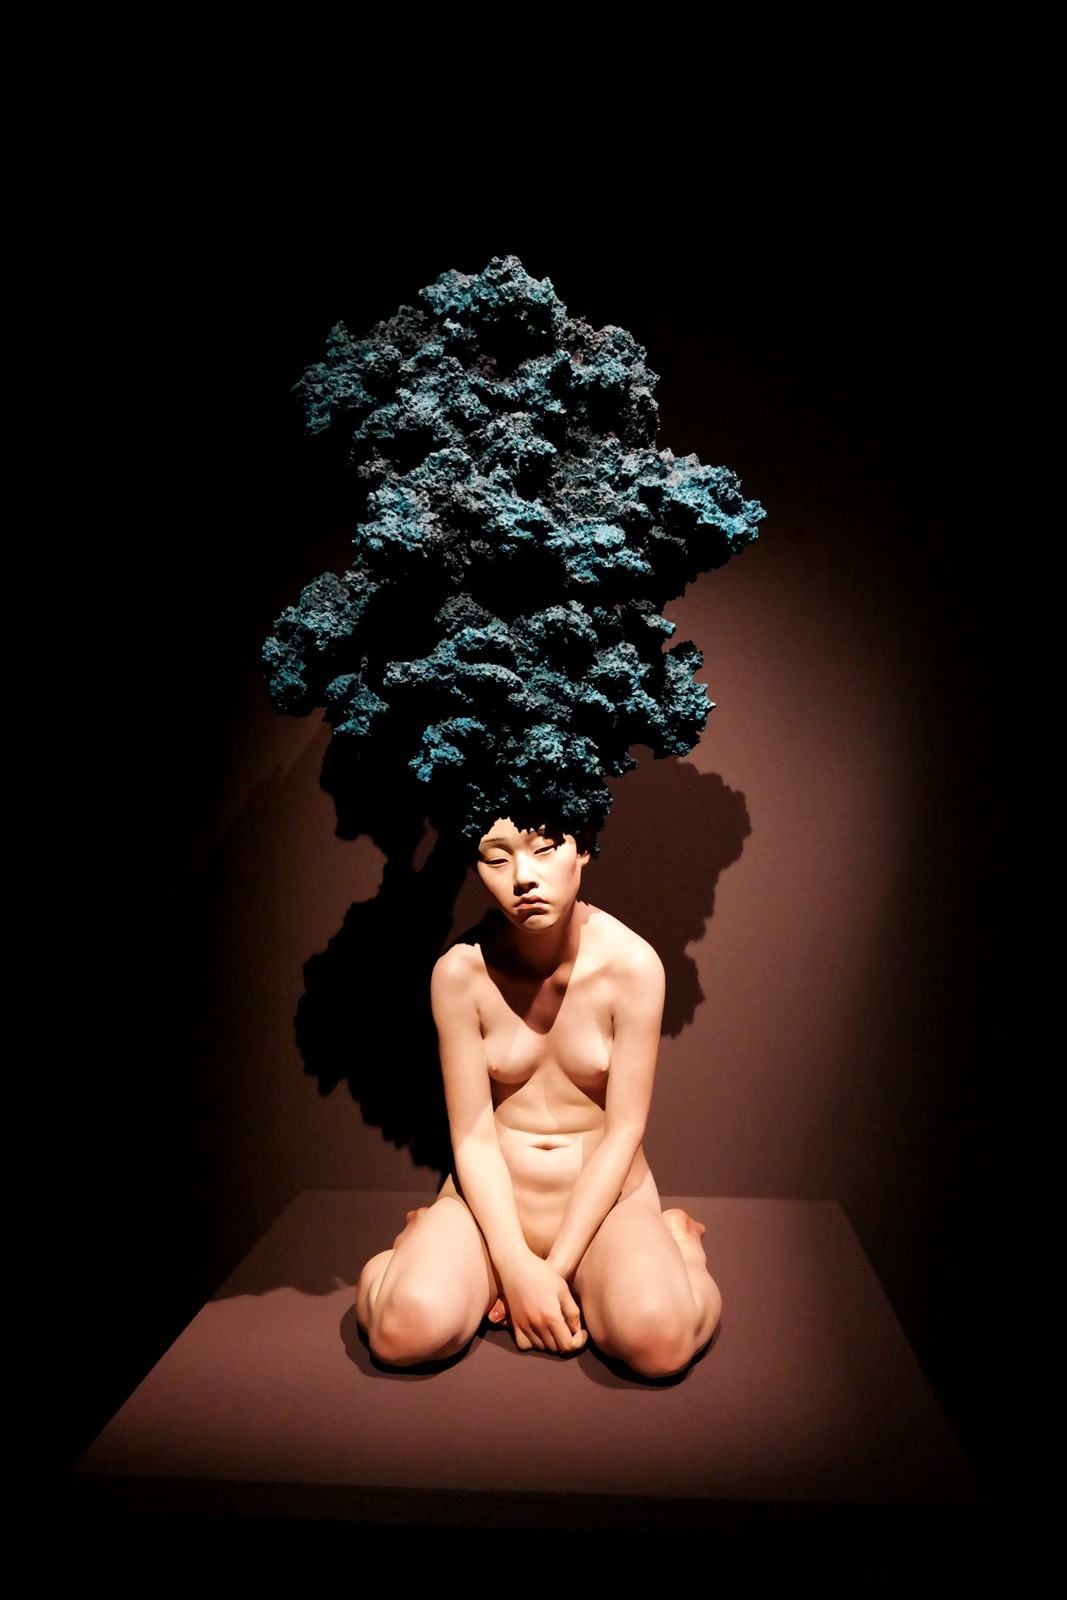 Hey! Act III exposition Halle Saint Pierre Paris exhibition The Dreamer Blue 2007 oil on resin sculpture de Choi Xooang corée du sud collection privée photo usofparis